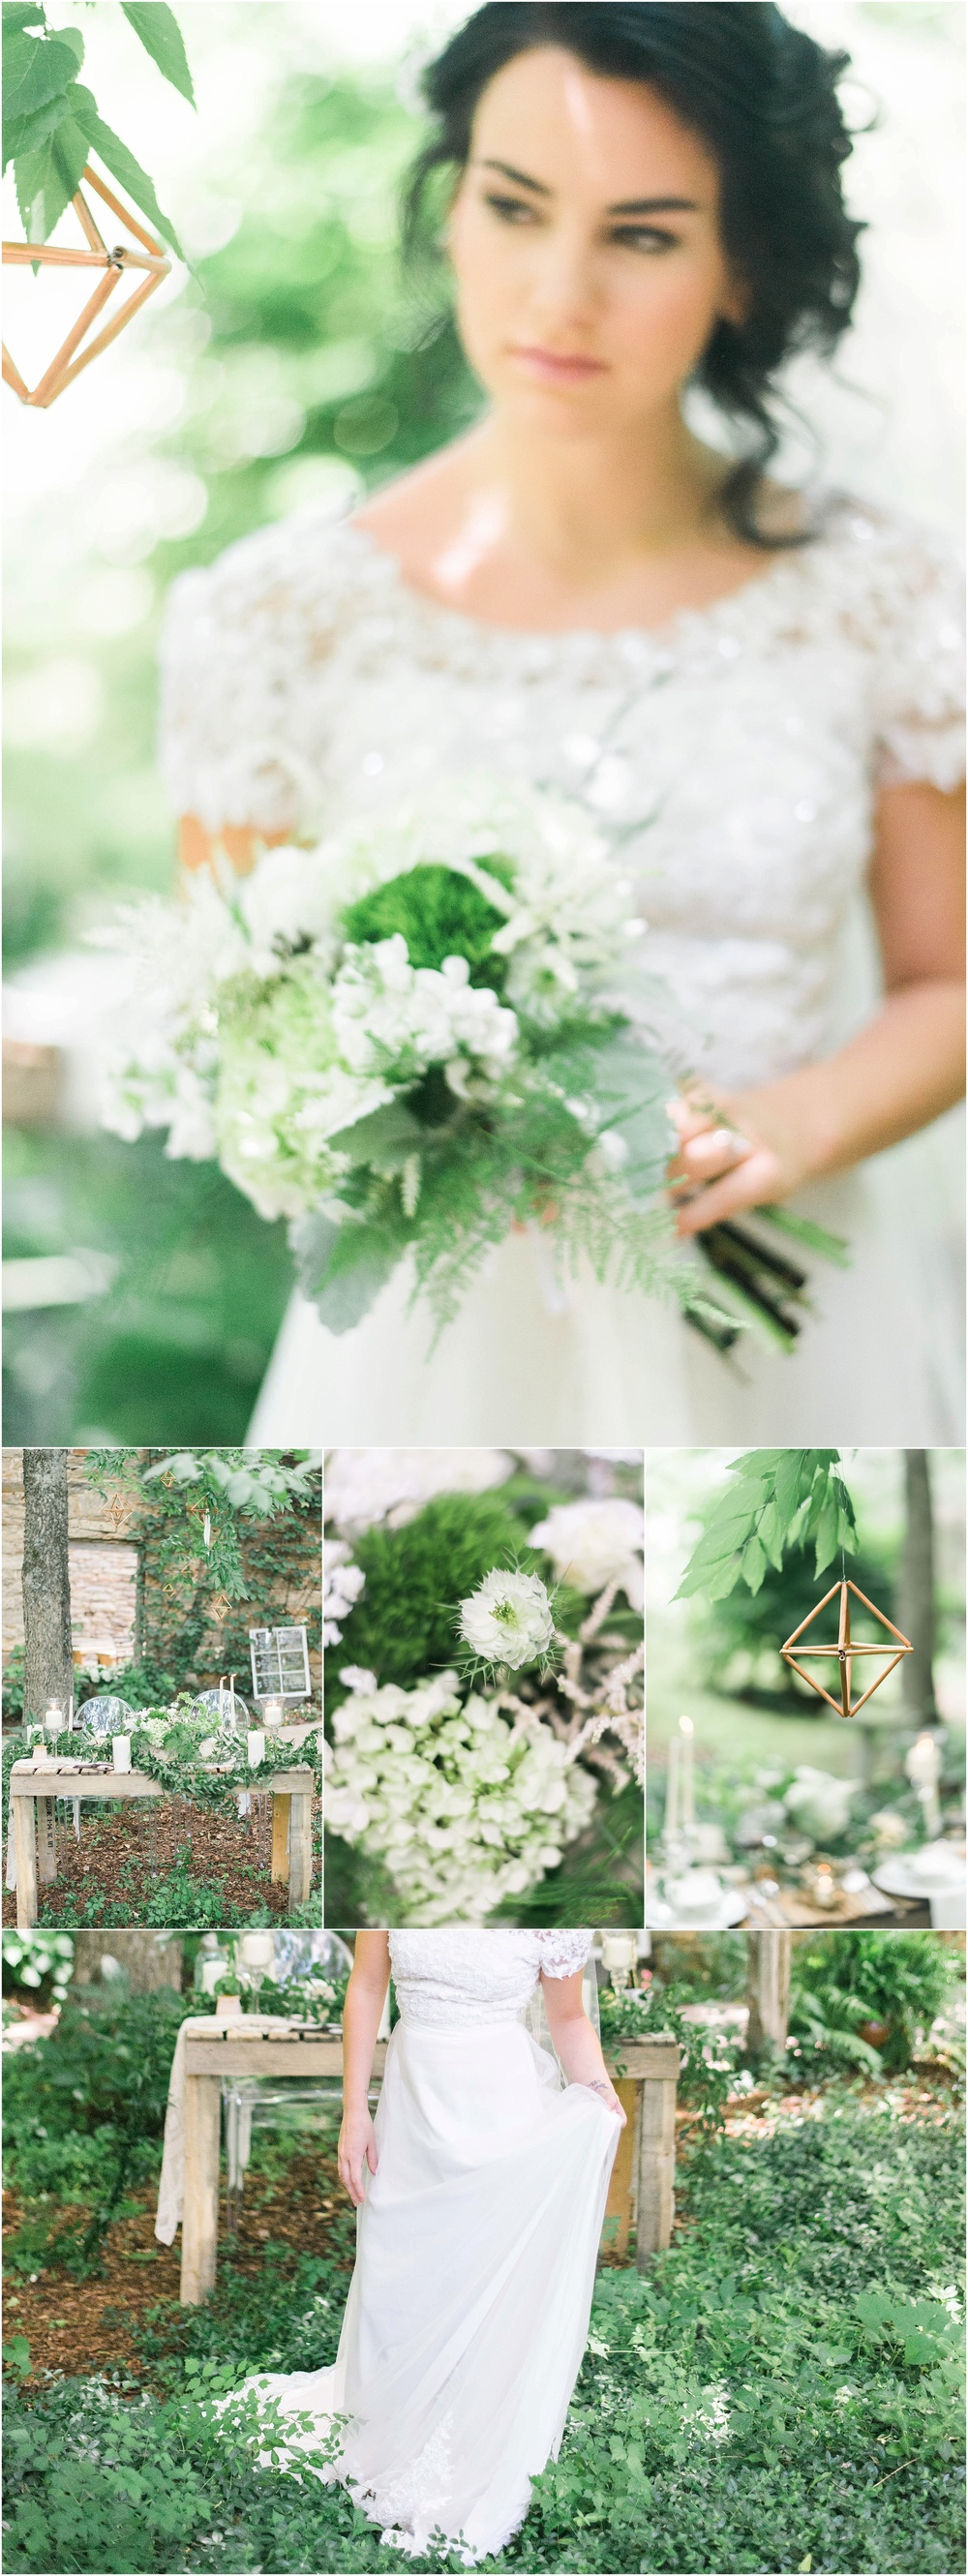 charlottesville_wedding Photographer_styled shoot_Style Me Pretty Feature2